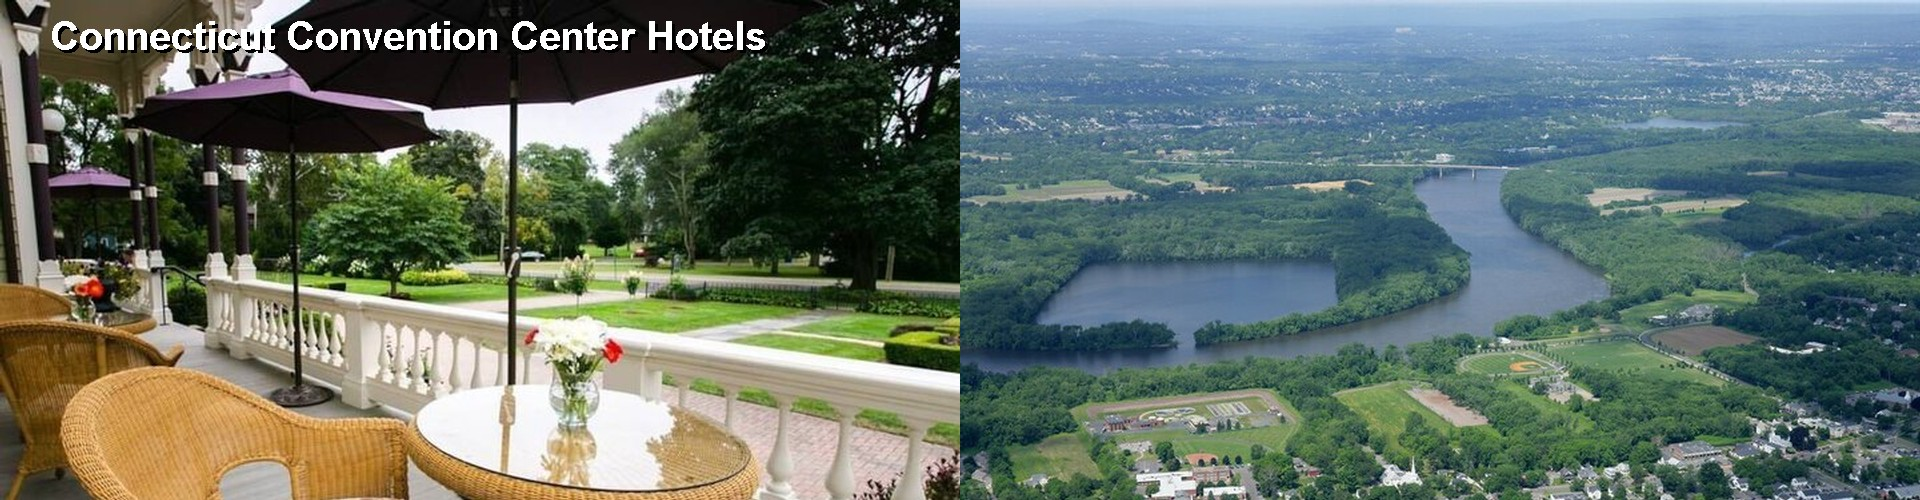 $46+ Hotels Near Connecticut Convention Center in Hartford (CT)